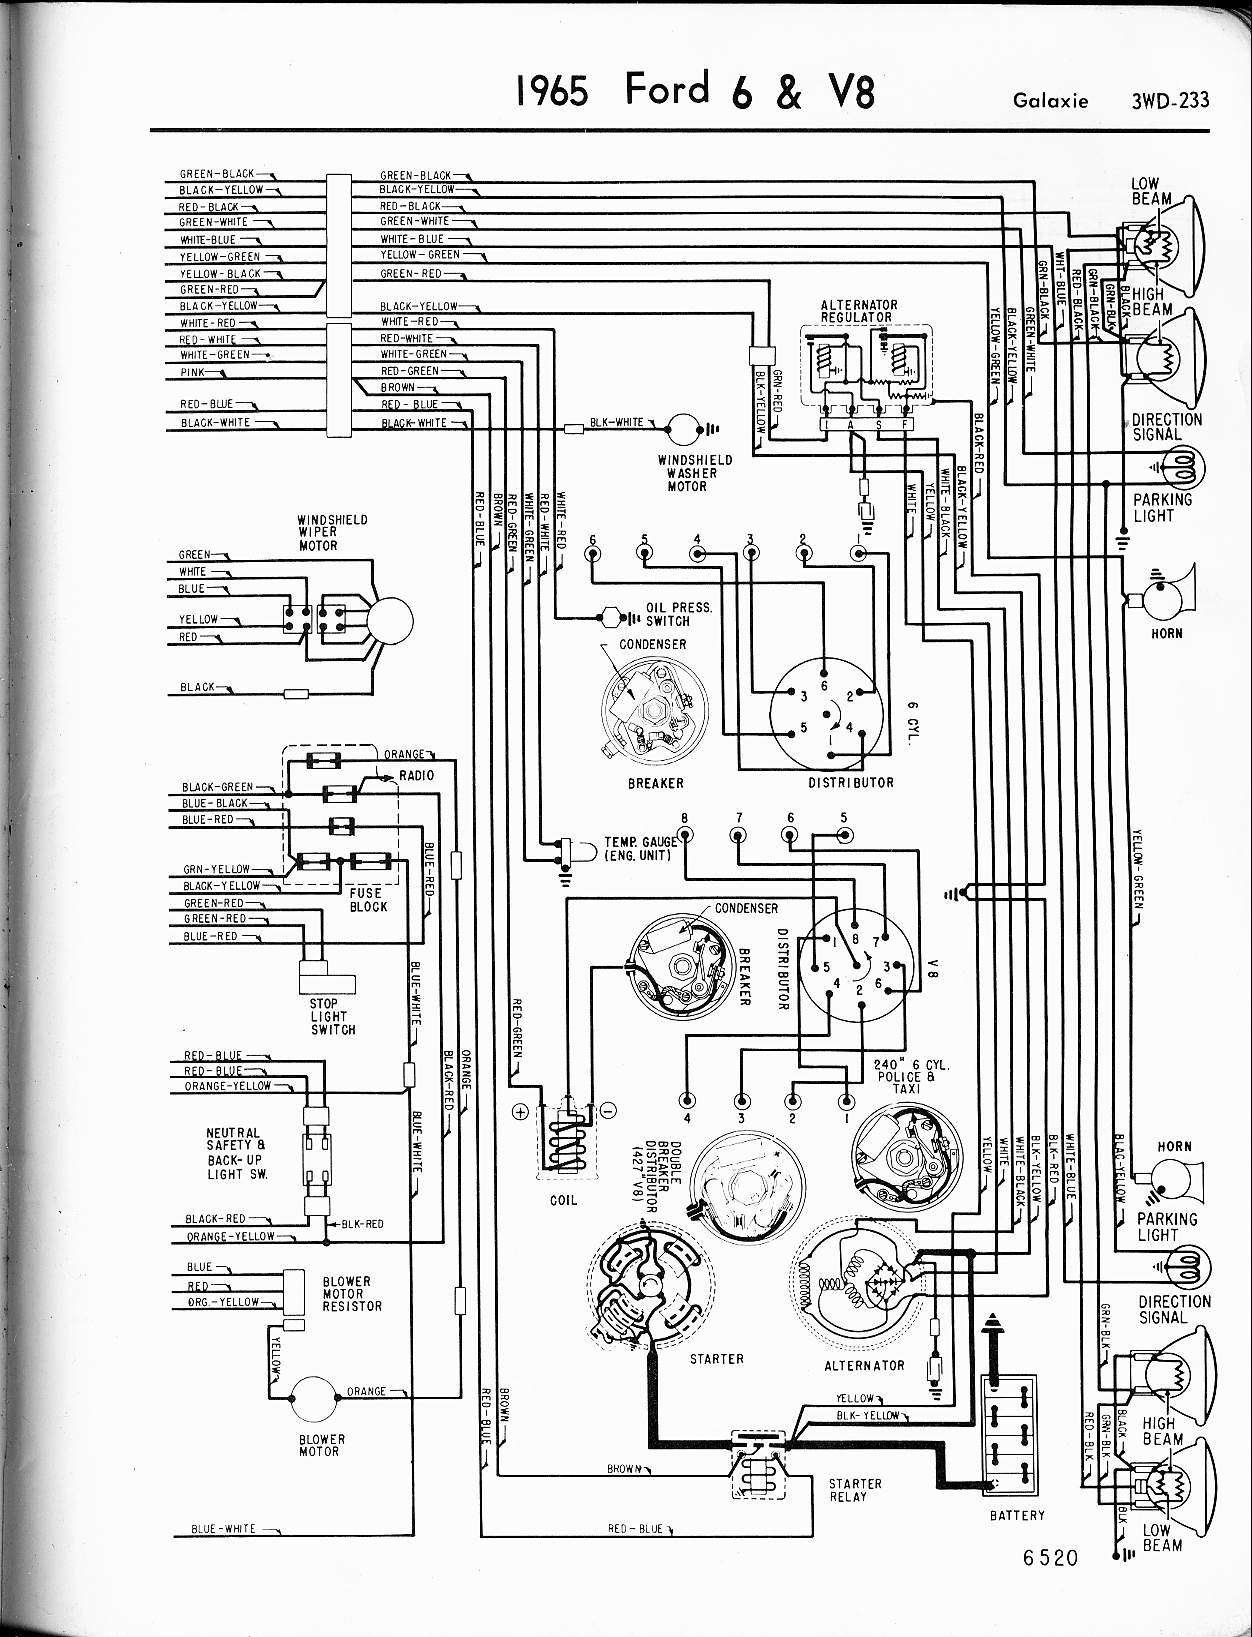 1964 mercury fuse box diagram #5 2000 cougar fuse box diagram under dash 1964 mercury fuse box diagram #5